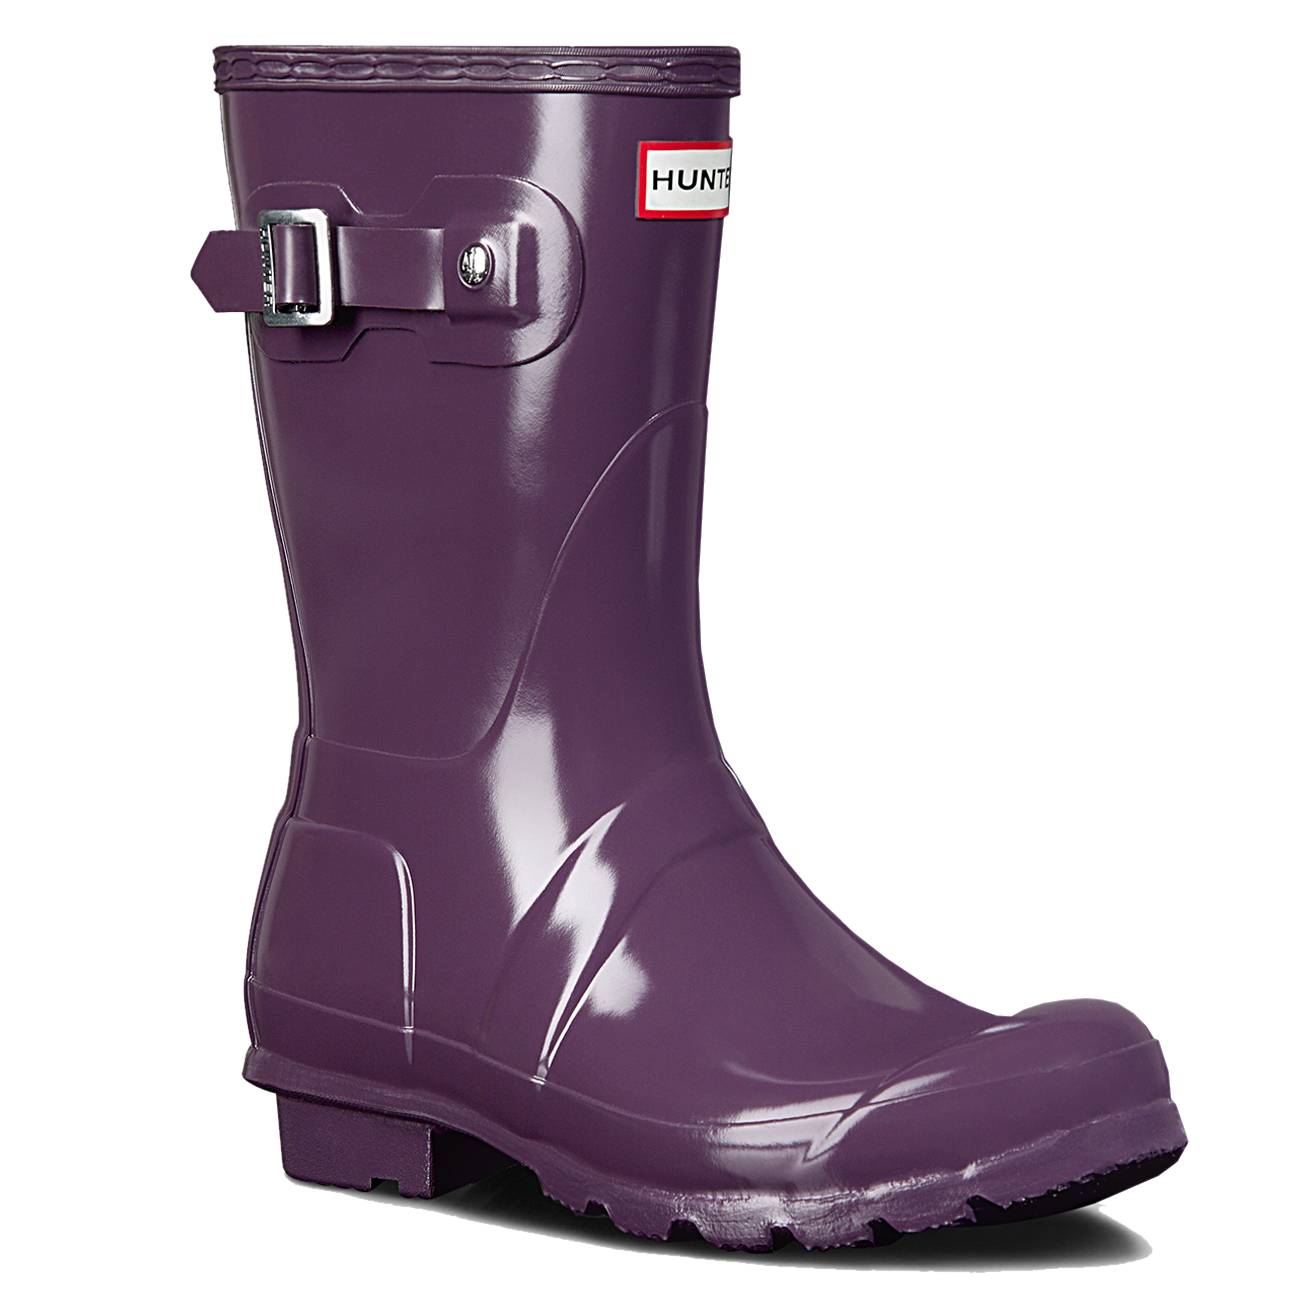 Simple Winter Boots And More For The Whole Family And Keep Checking Back Here For Updates As More Details Are Released Amazon Earl